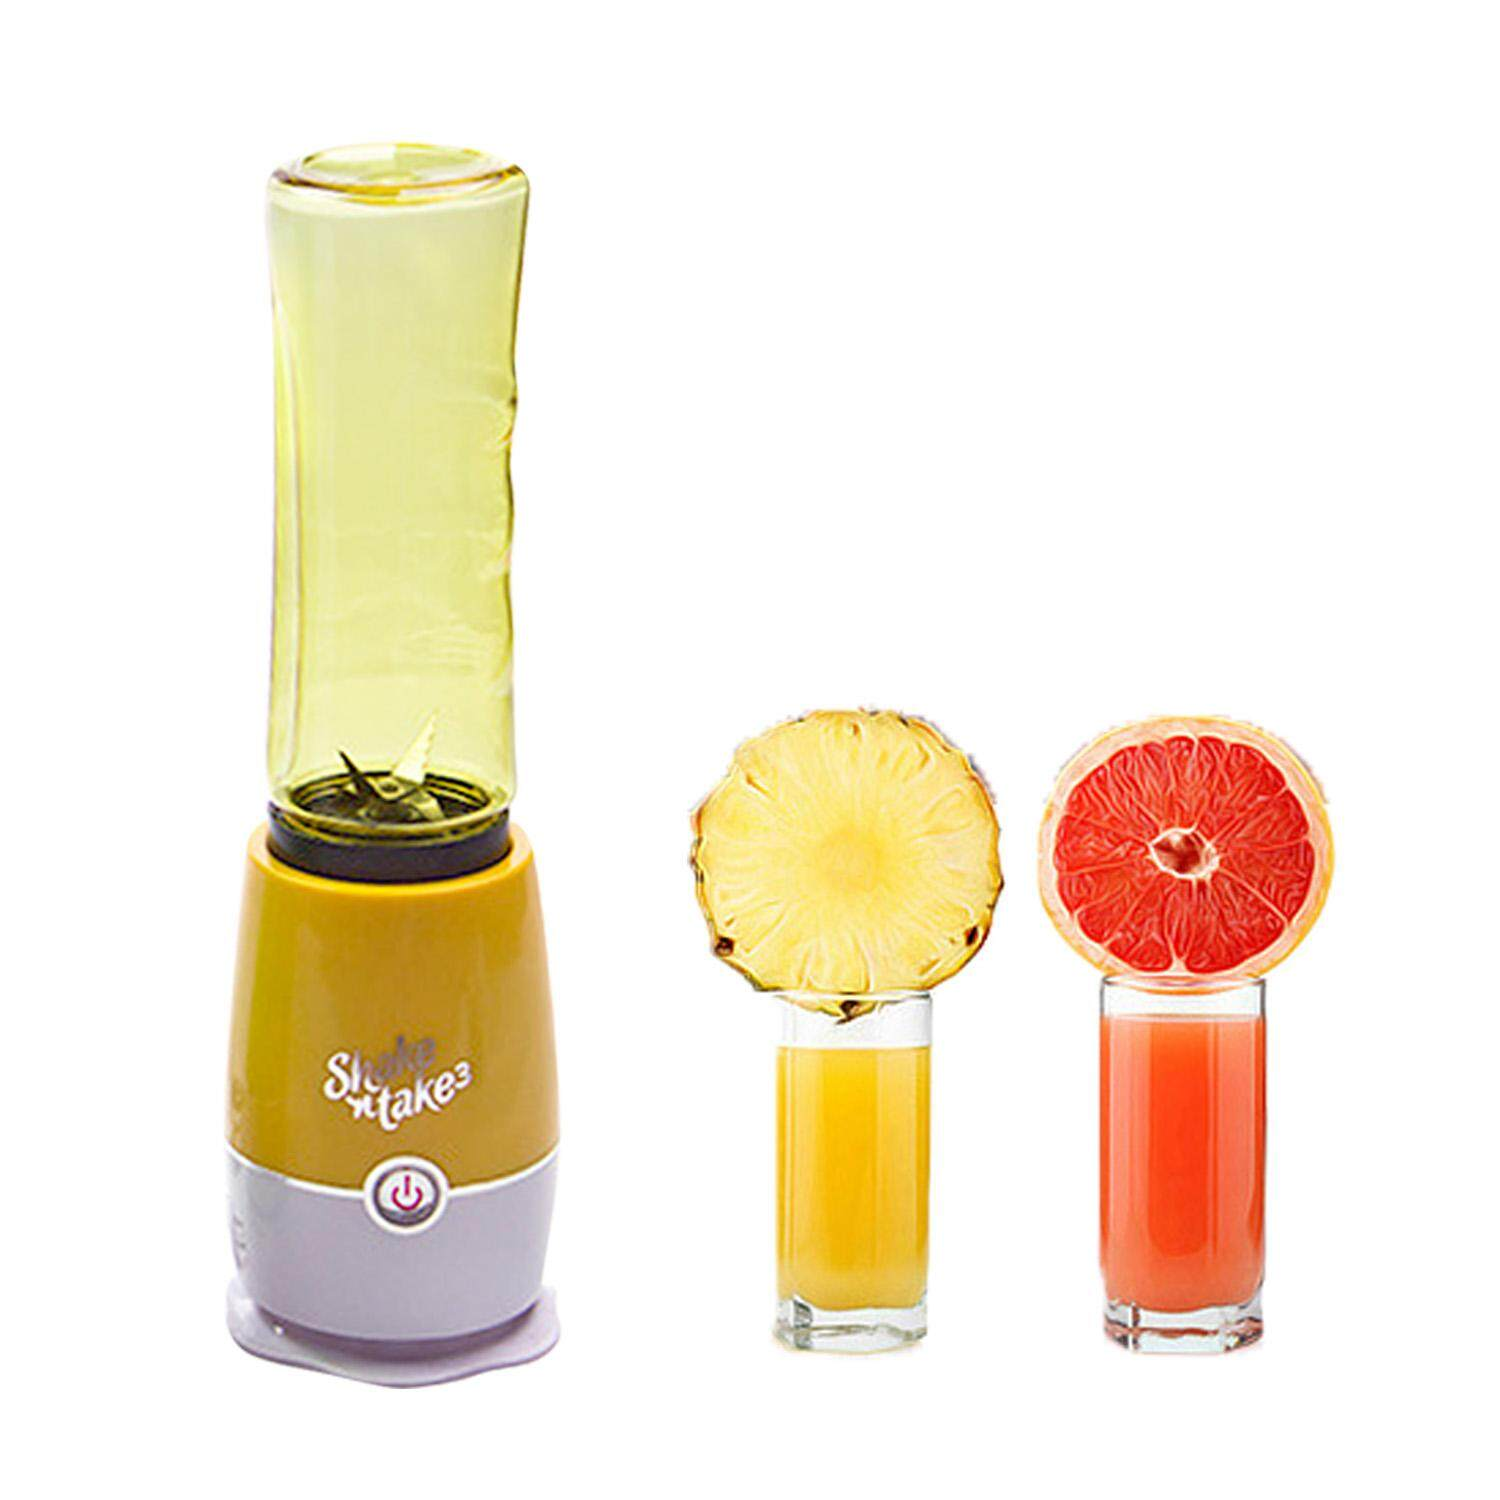 ... Mini Portable USB Rechargeable Electric Multi-functional Blender Milk Juice Shake Fruit Vegetable Smoothie Drink